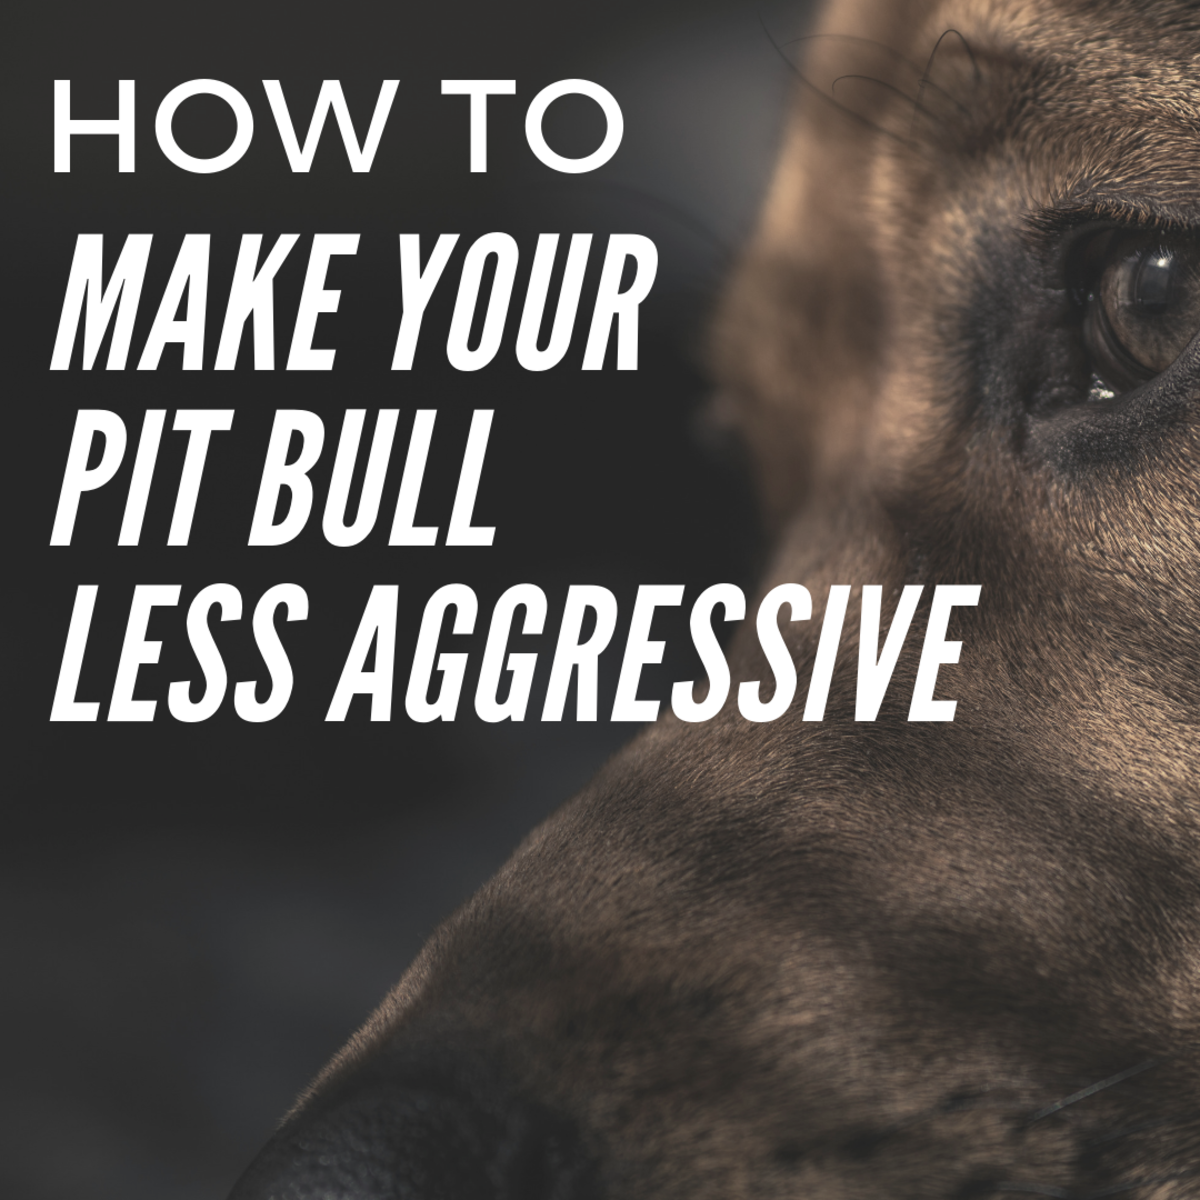 How to Make My Pit Bull Less Aggressive